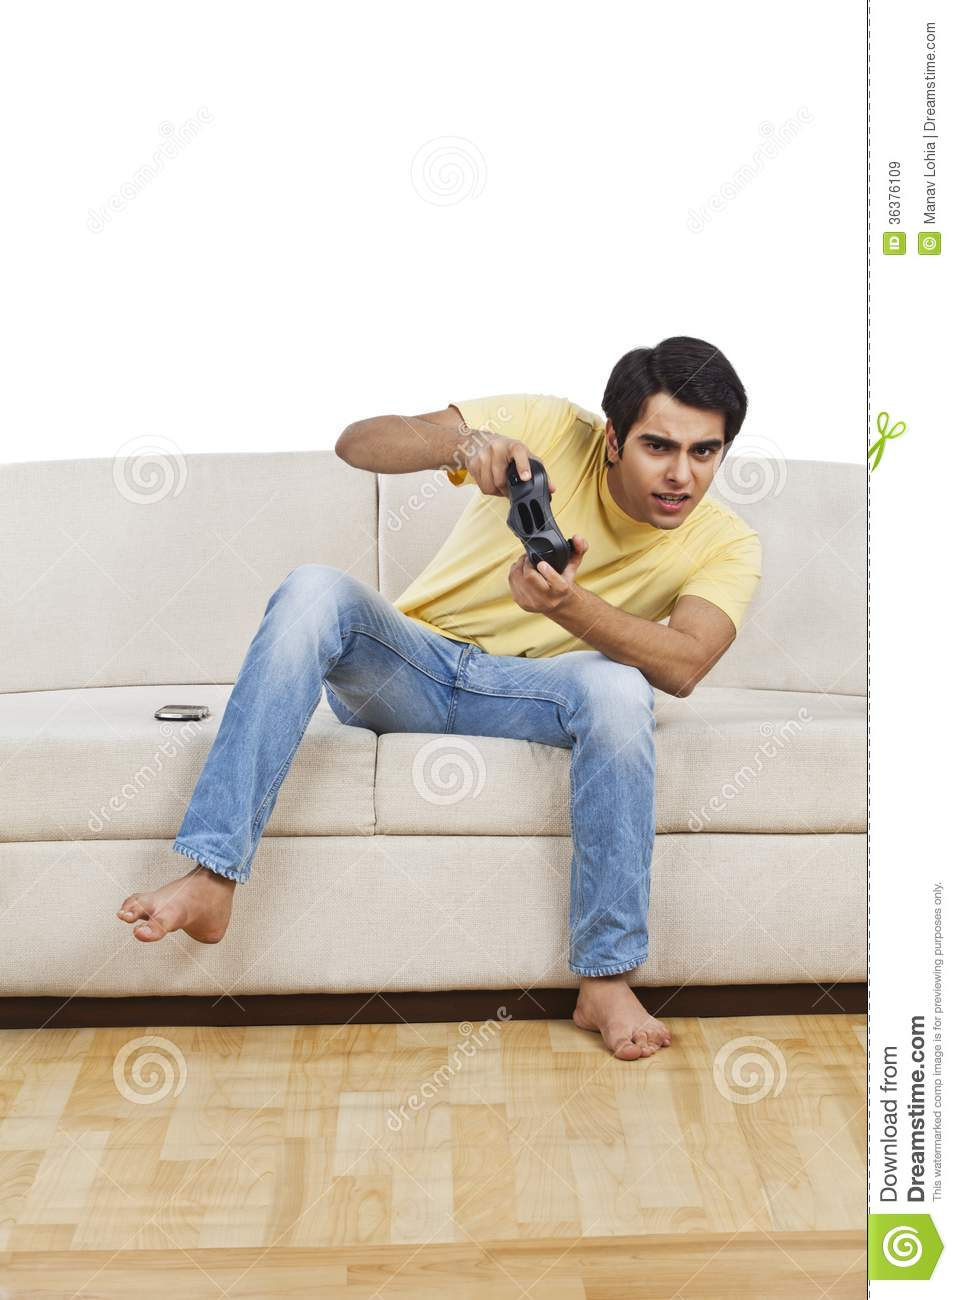 man playing video game stock image image of clothing. Black Bedroom Furniture Sets. Home Design Ideas